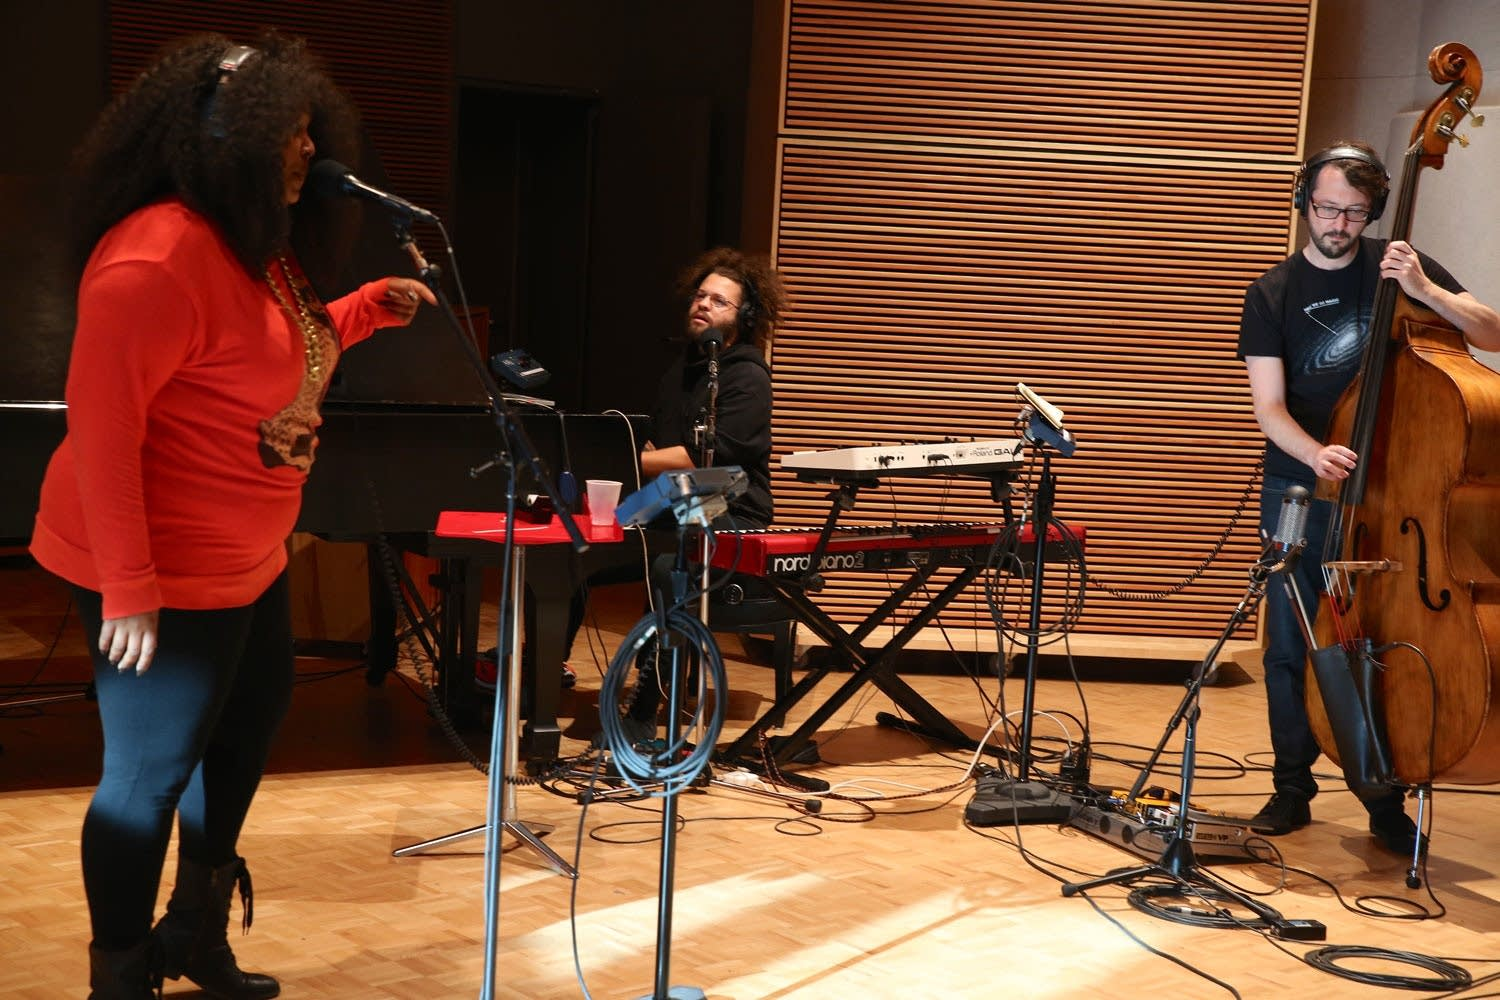 Lizzo performs in The Current studio 4